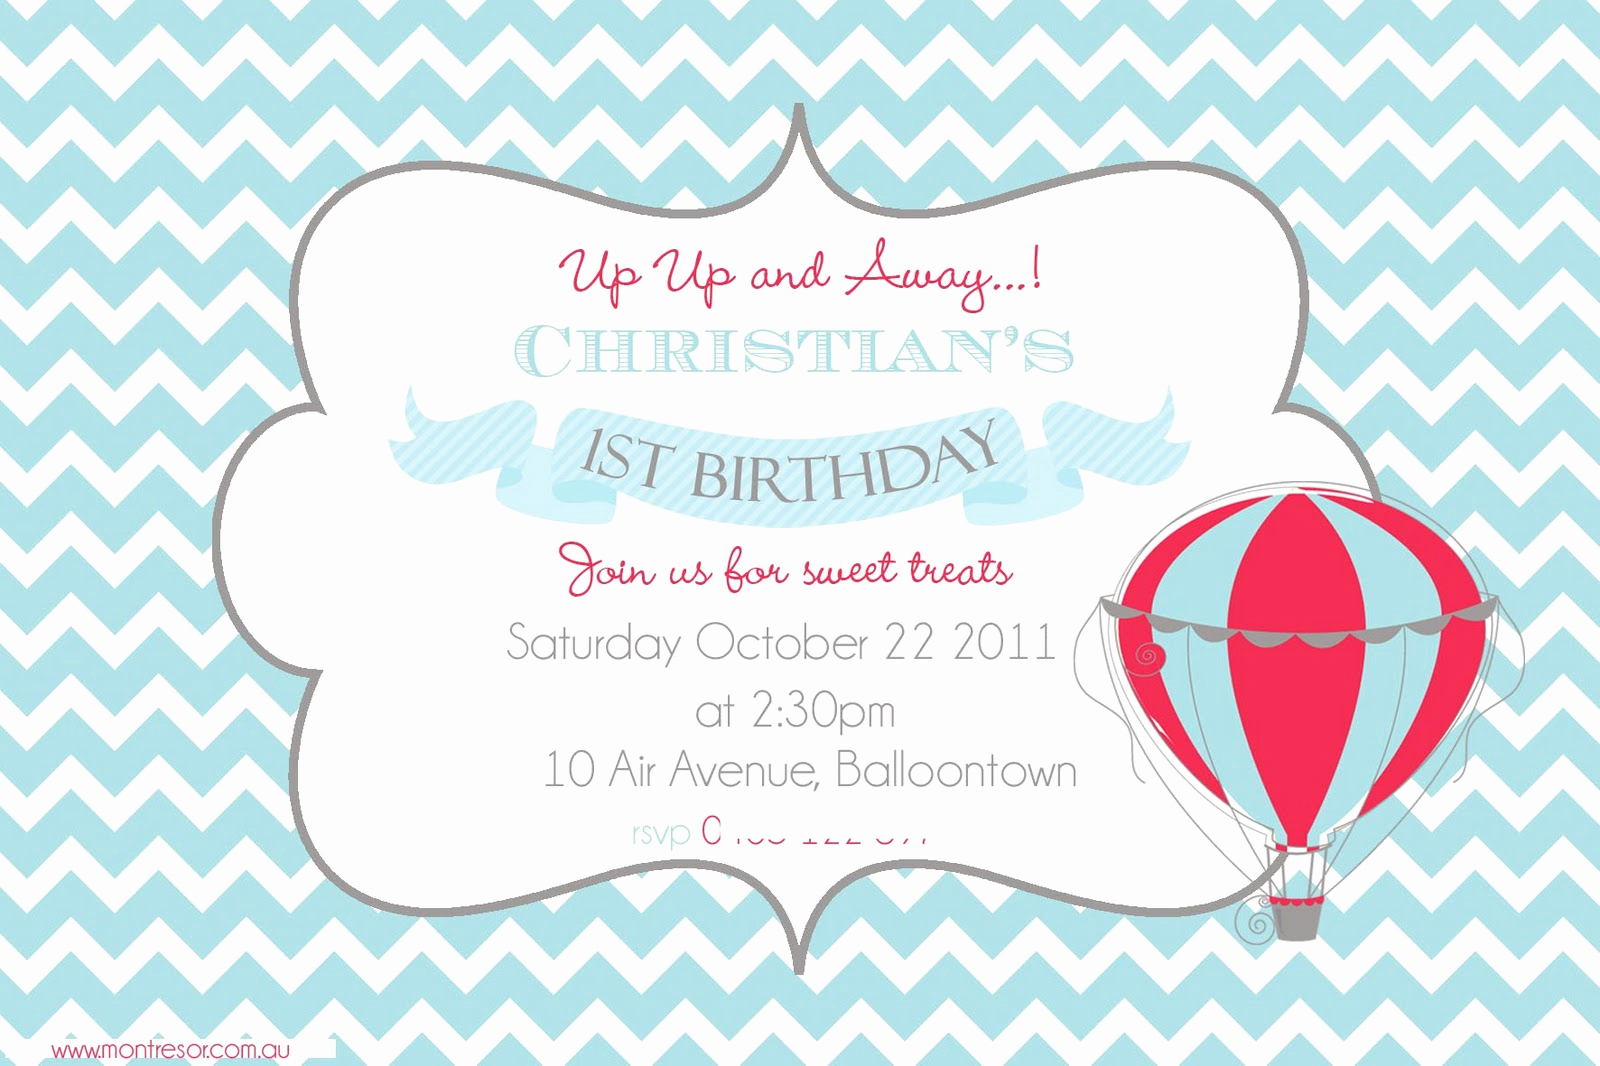 Hot Air Balloon Invitation Luxury Hello Naomi Up Up and Away